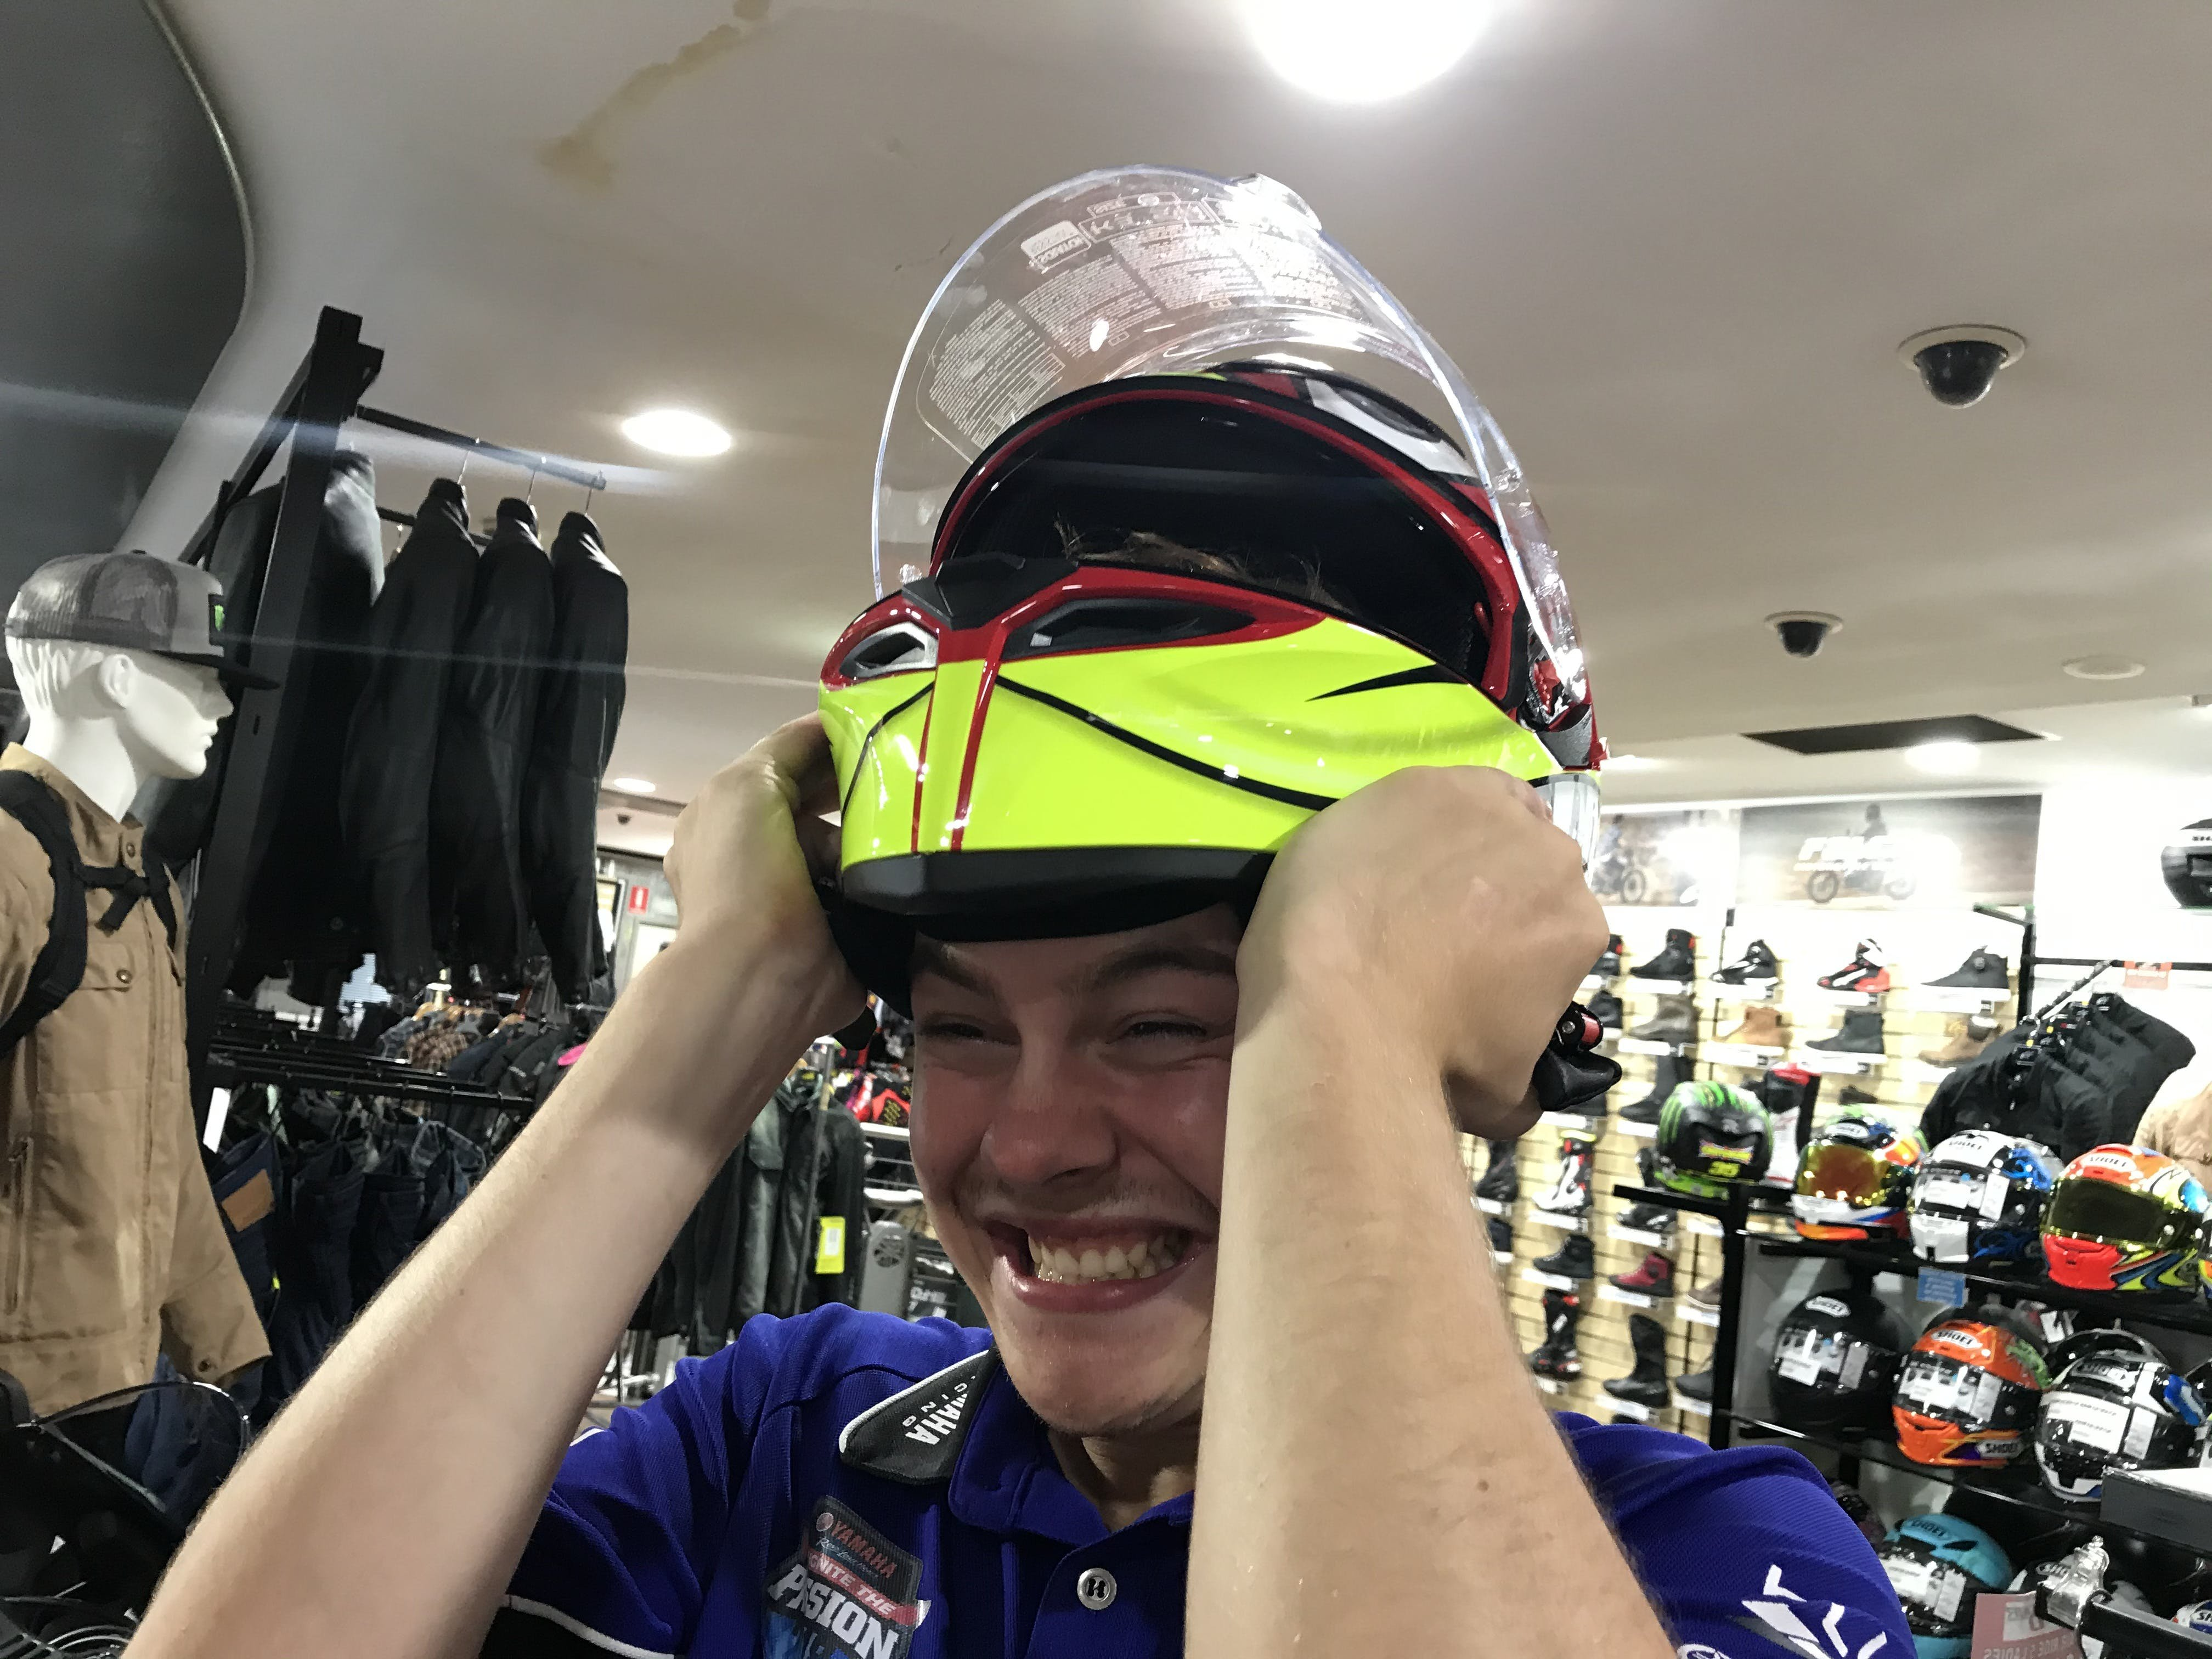 Guy straining to take a motorcycle helmet off